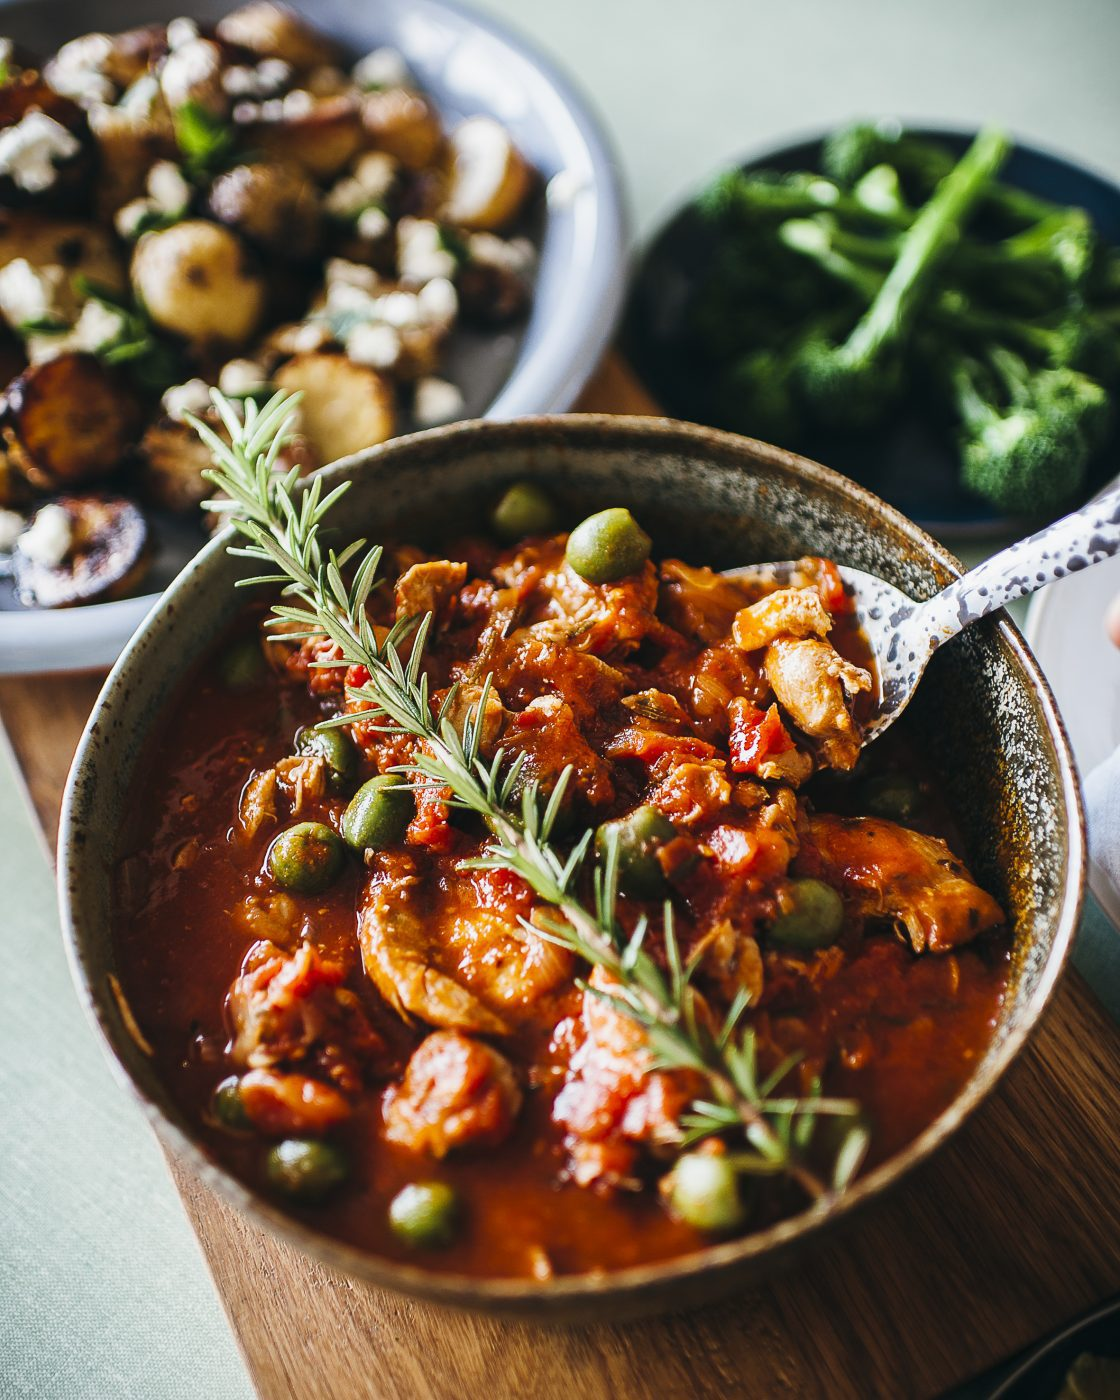 , Italian-style chicken with rosemary and onions